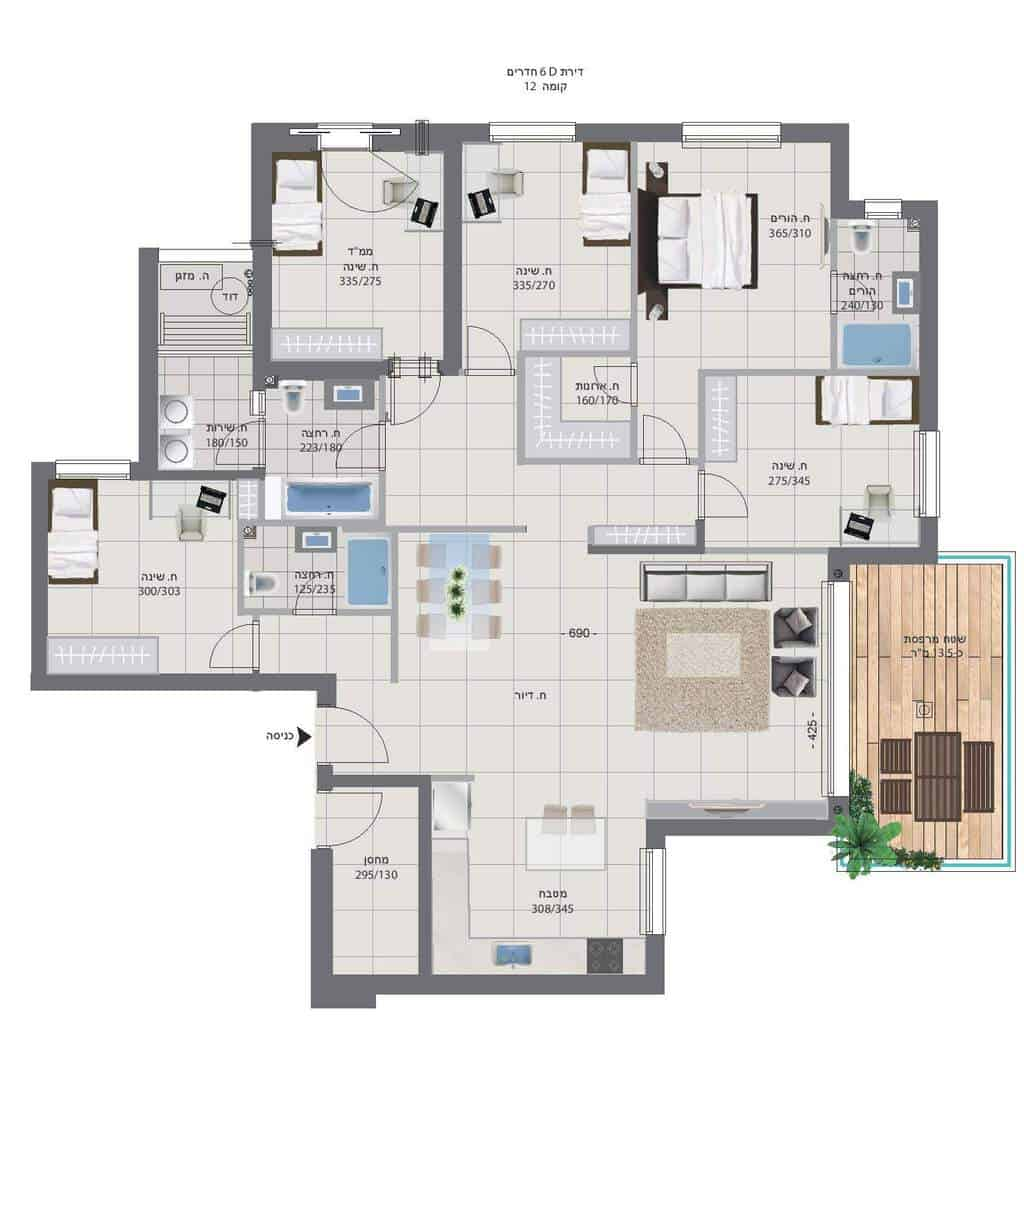 floor_12_app_D_6_rooms-page-001